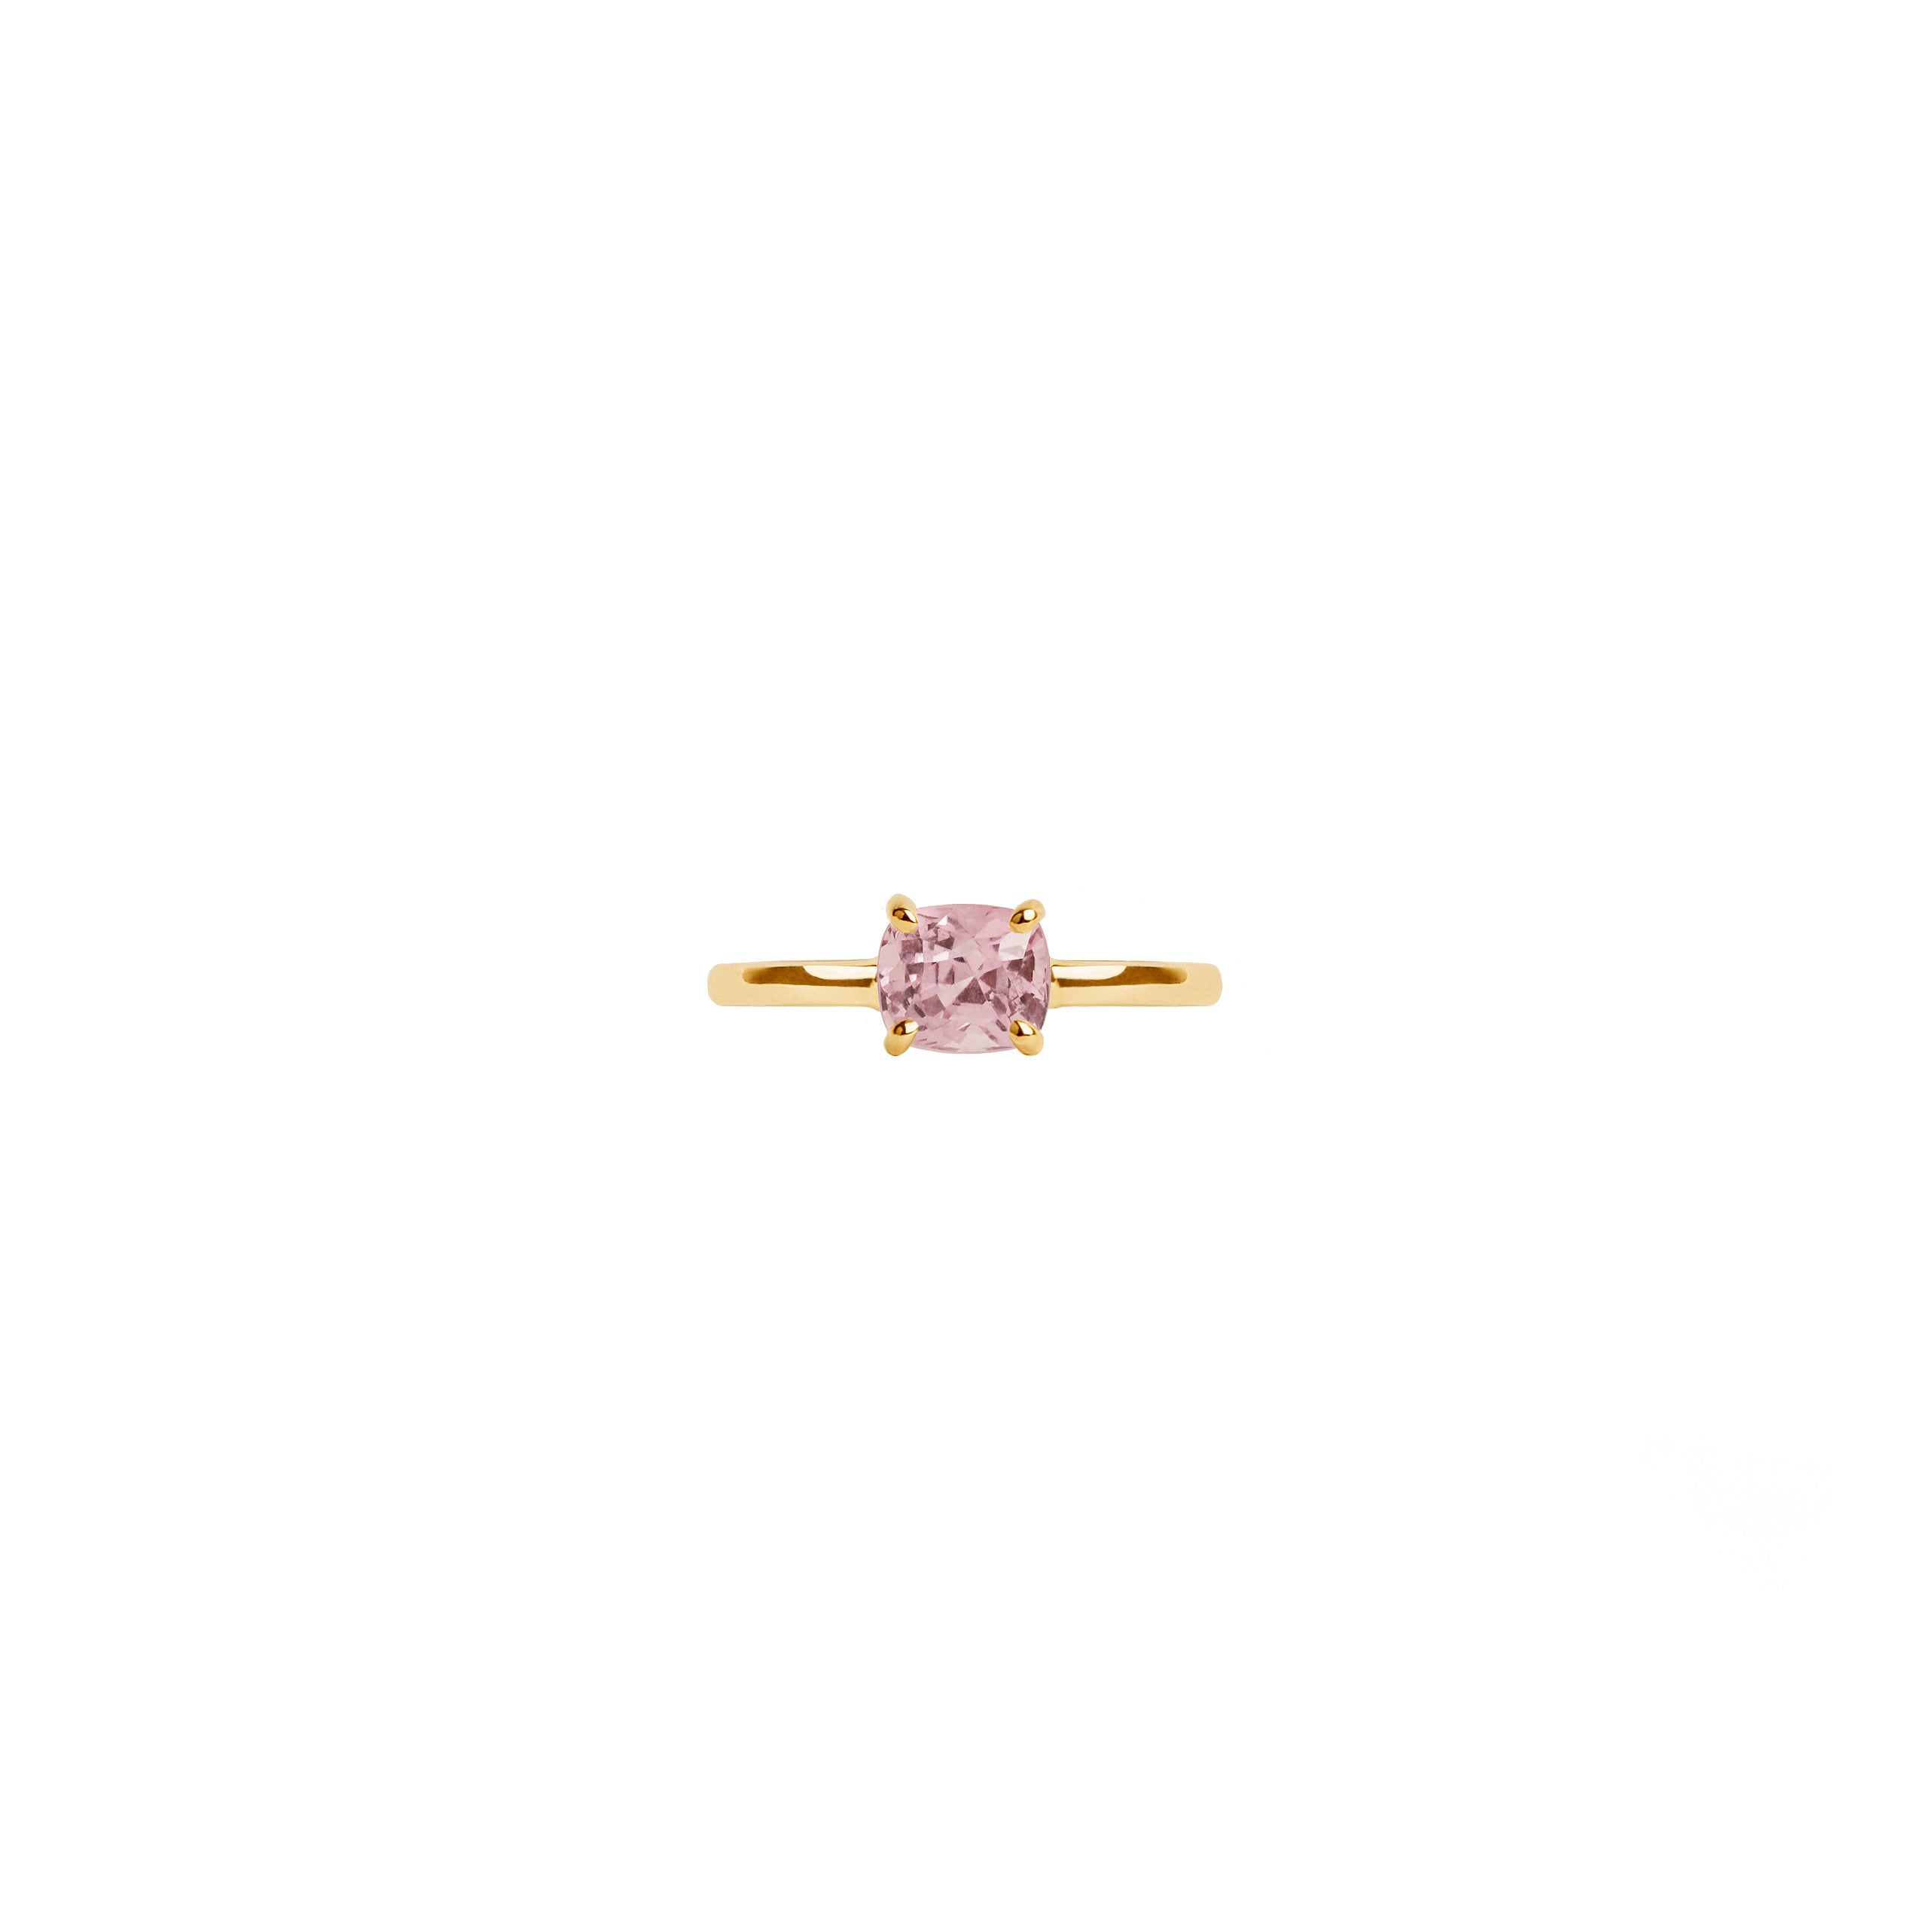 Build your own 14k Gold Spinel Ring